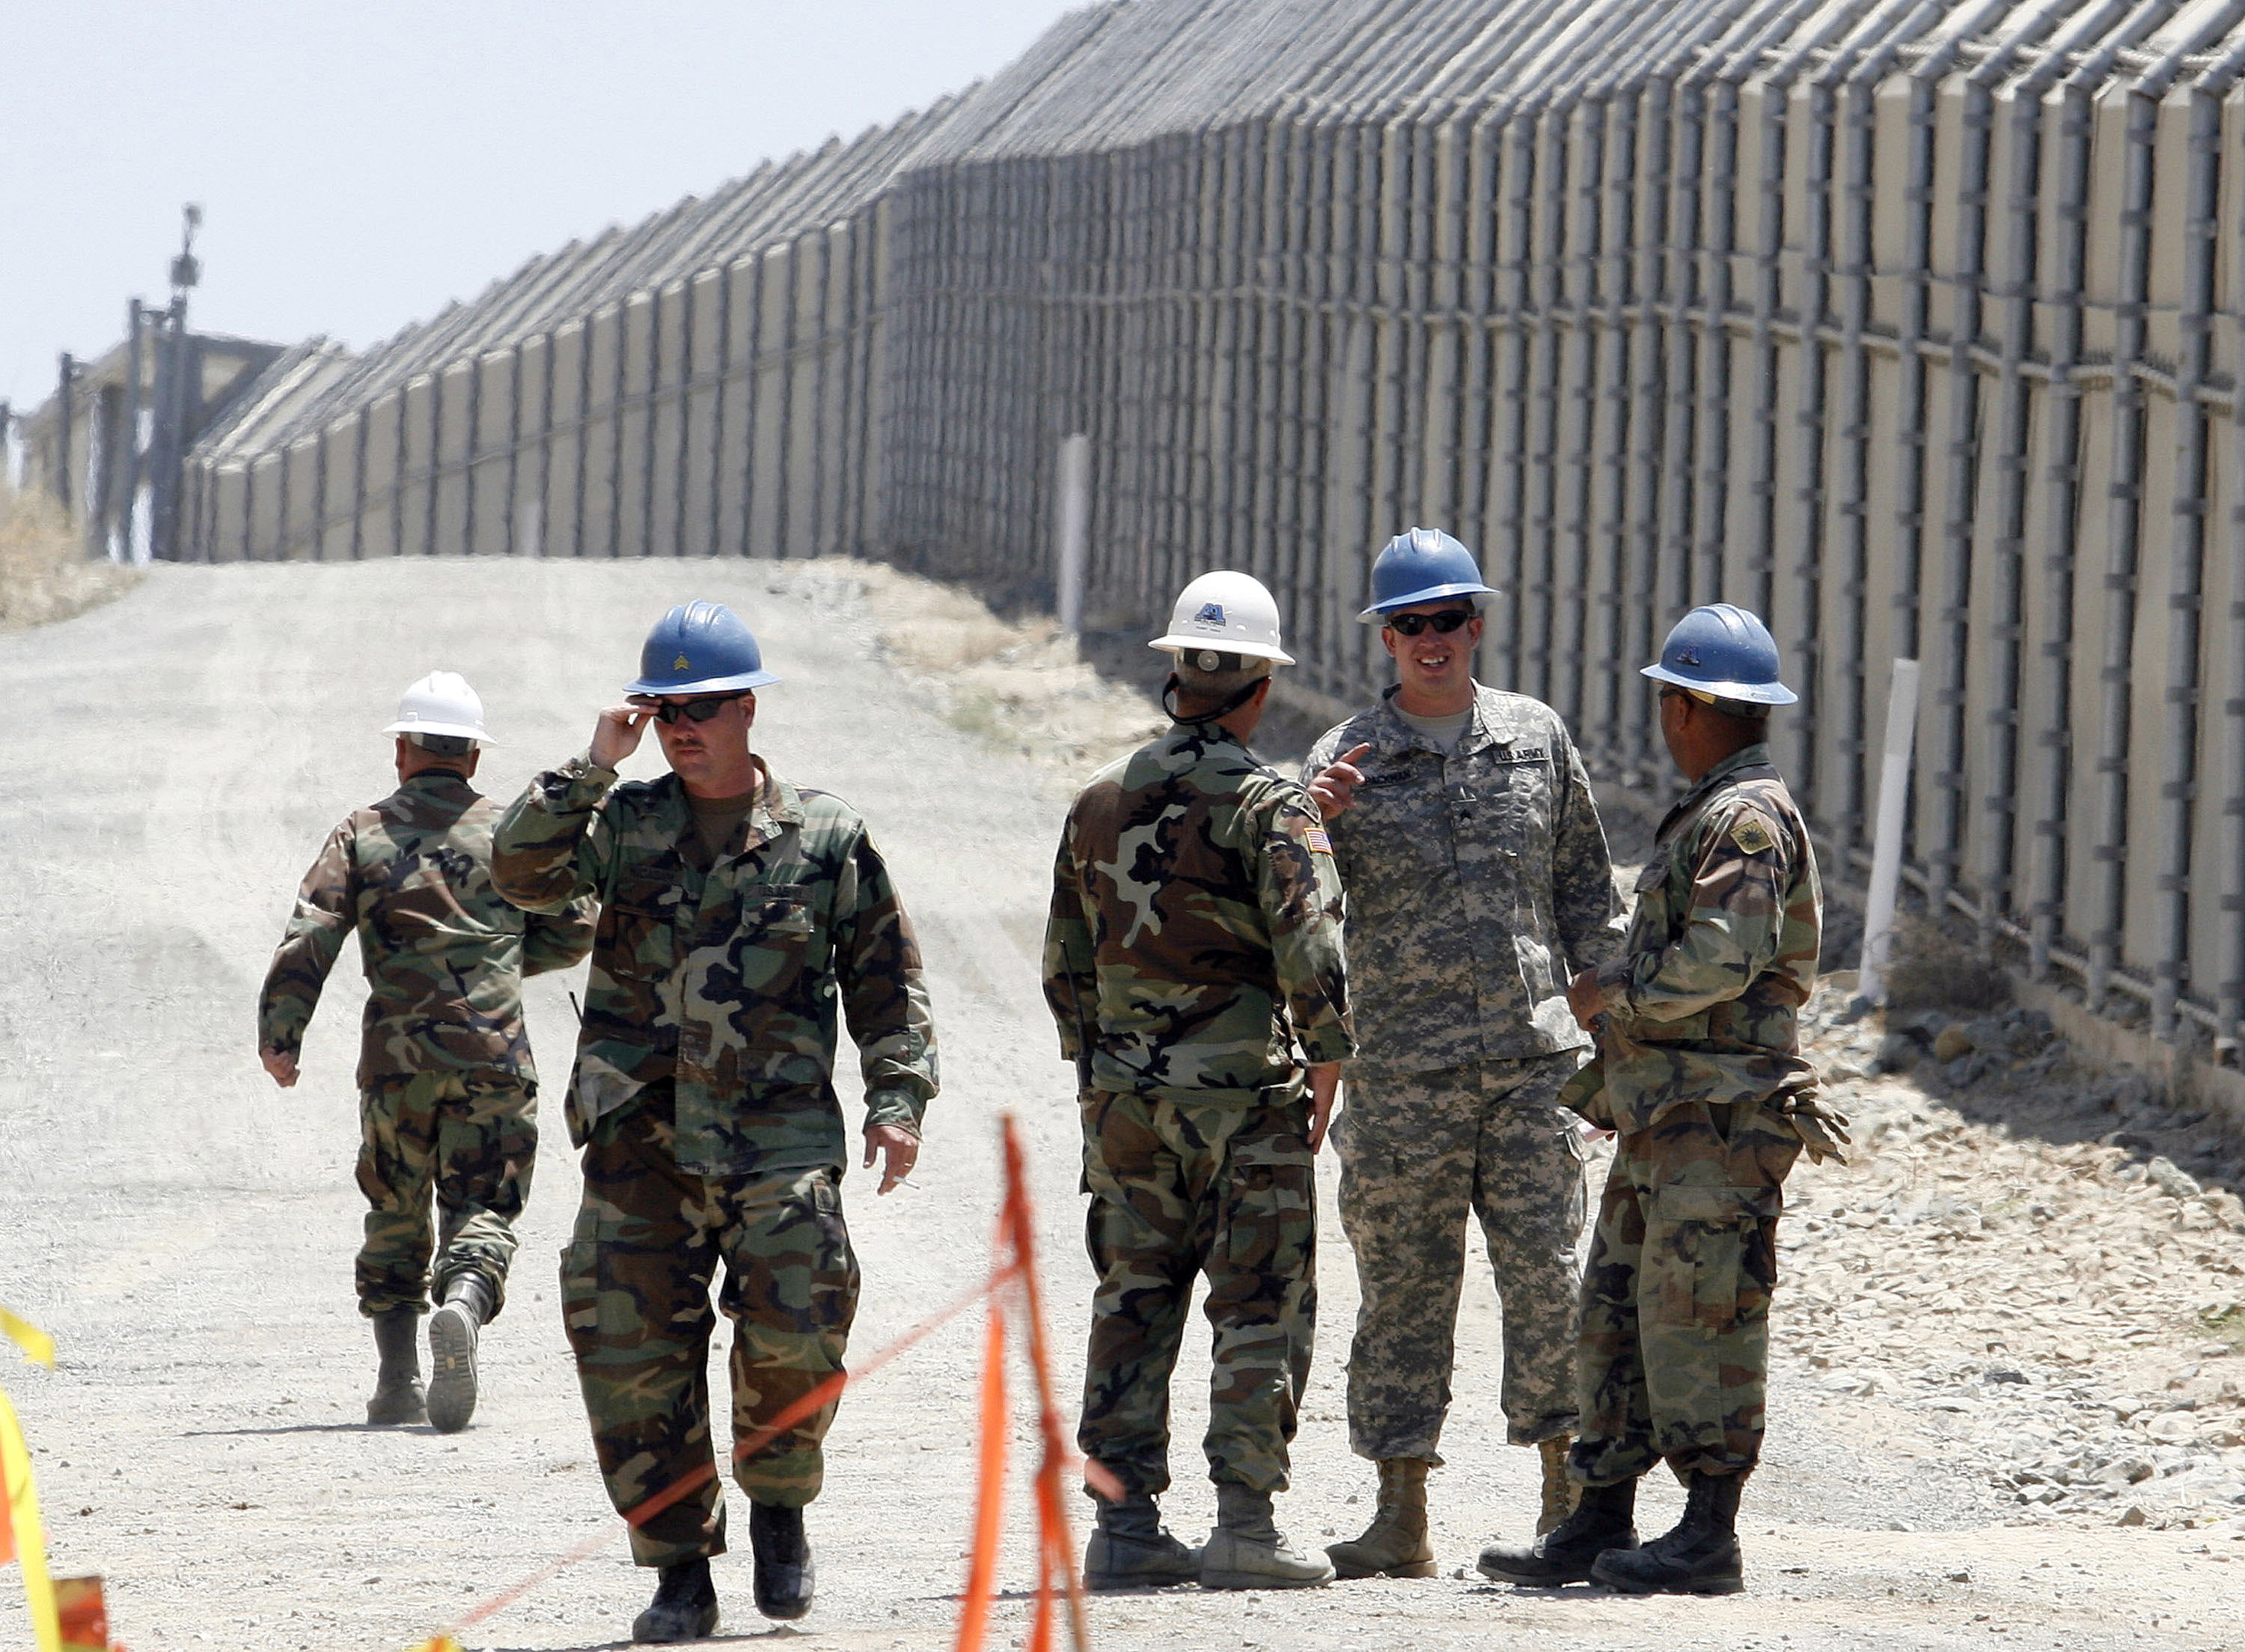 The House Armed Services chairman doesn't want to 'rob military' to fund border wall